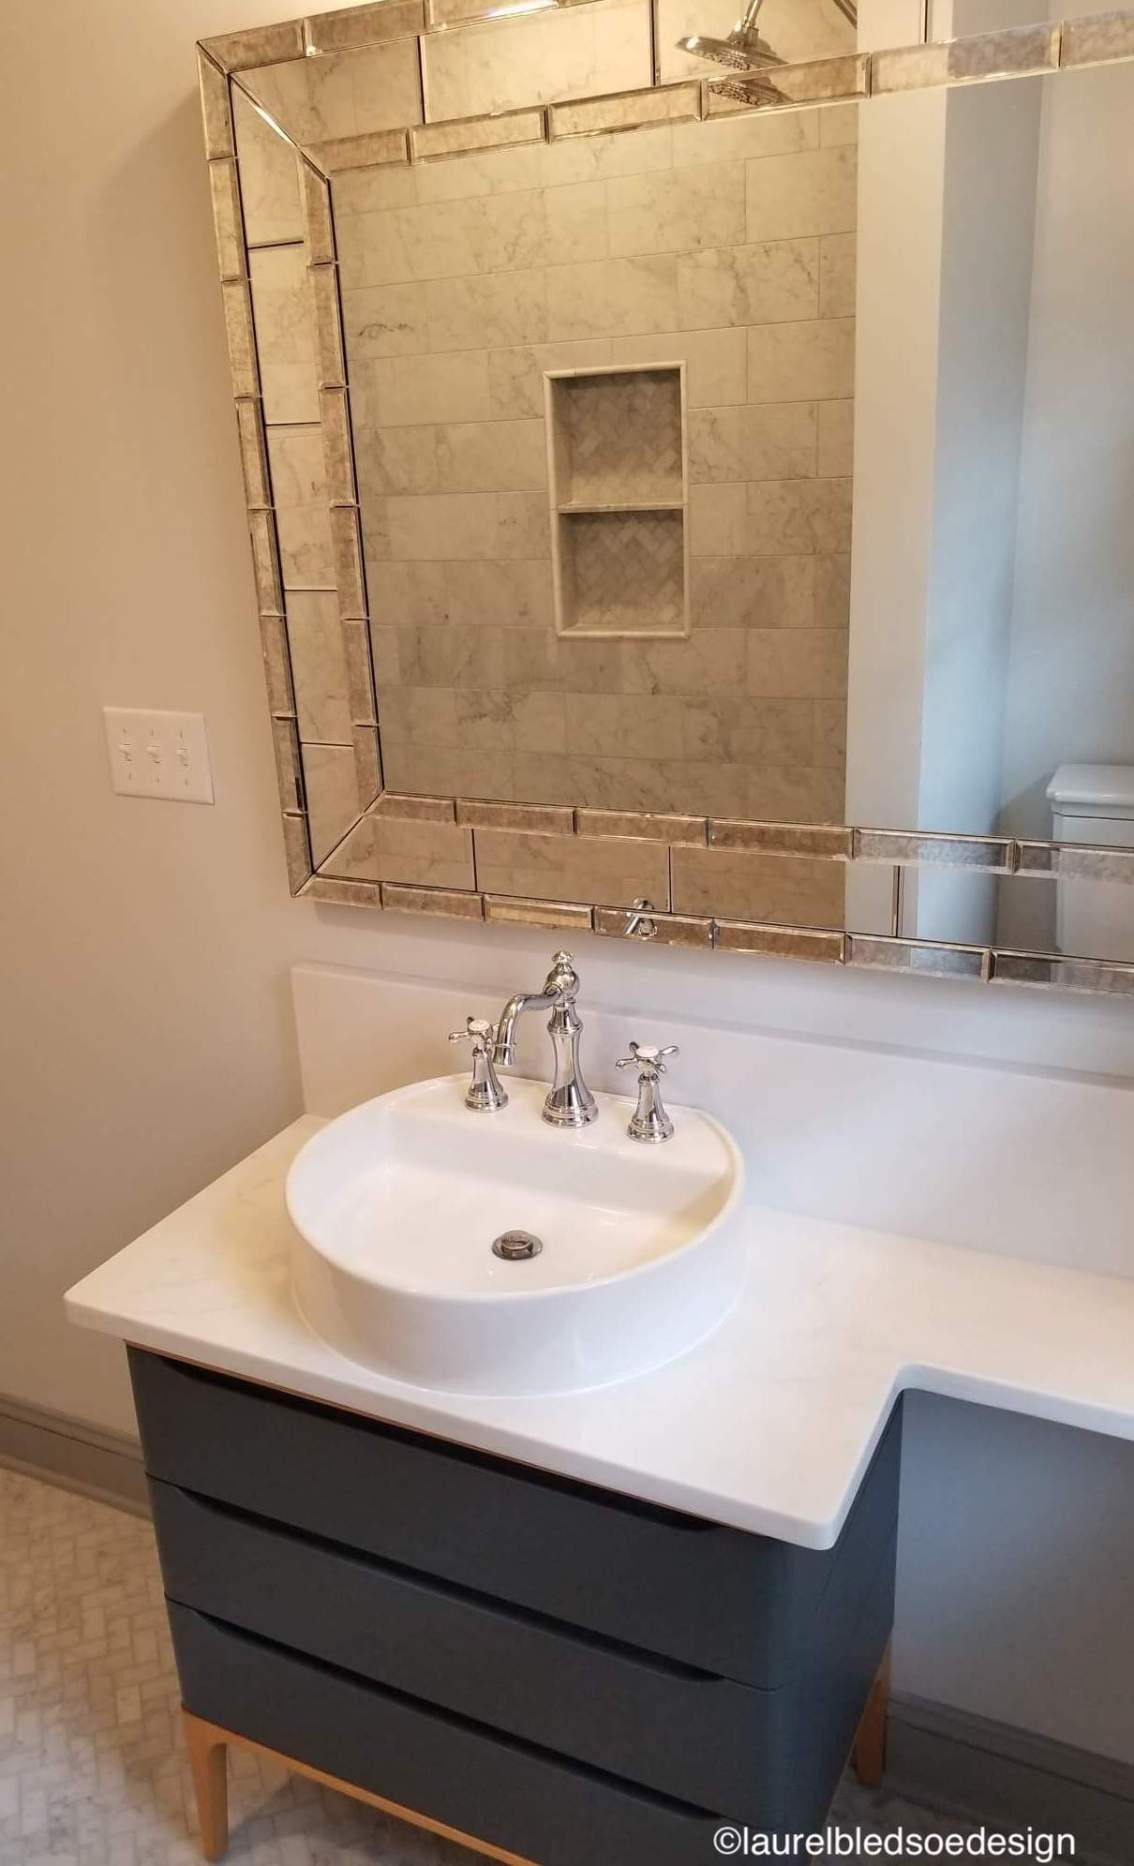 laurelbledsoedesign-bathroom-update-vanity-surface-mount-sink-chrome-faucets